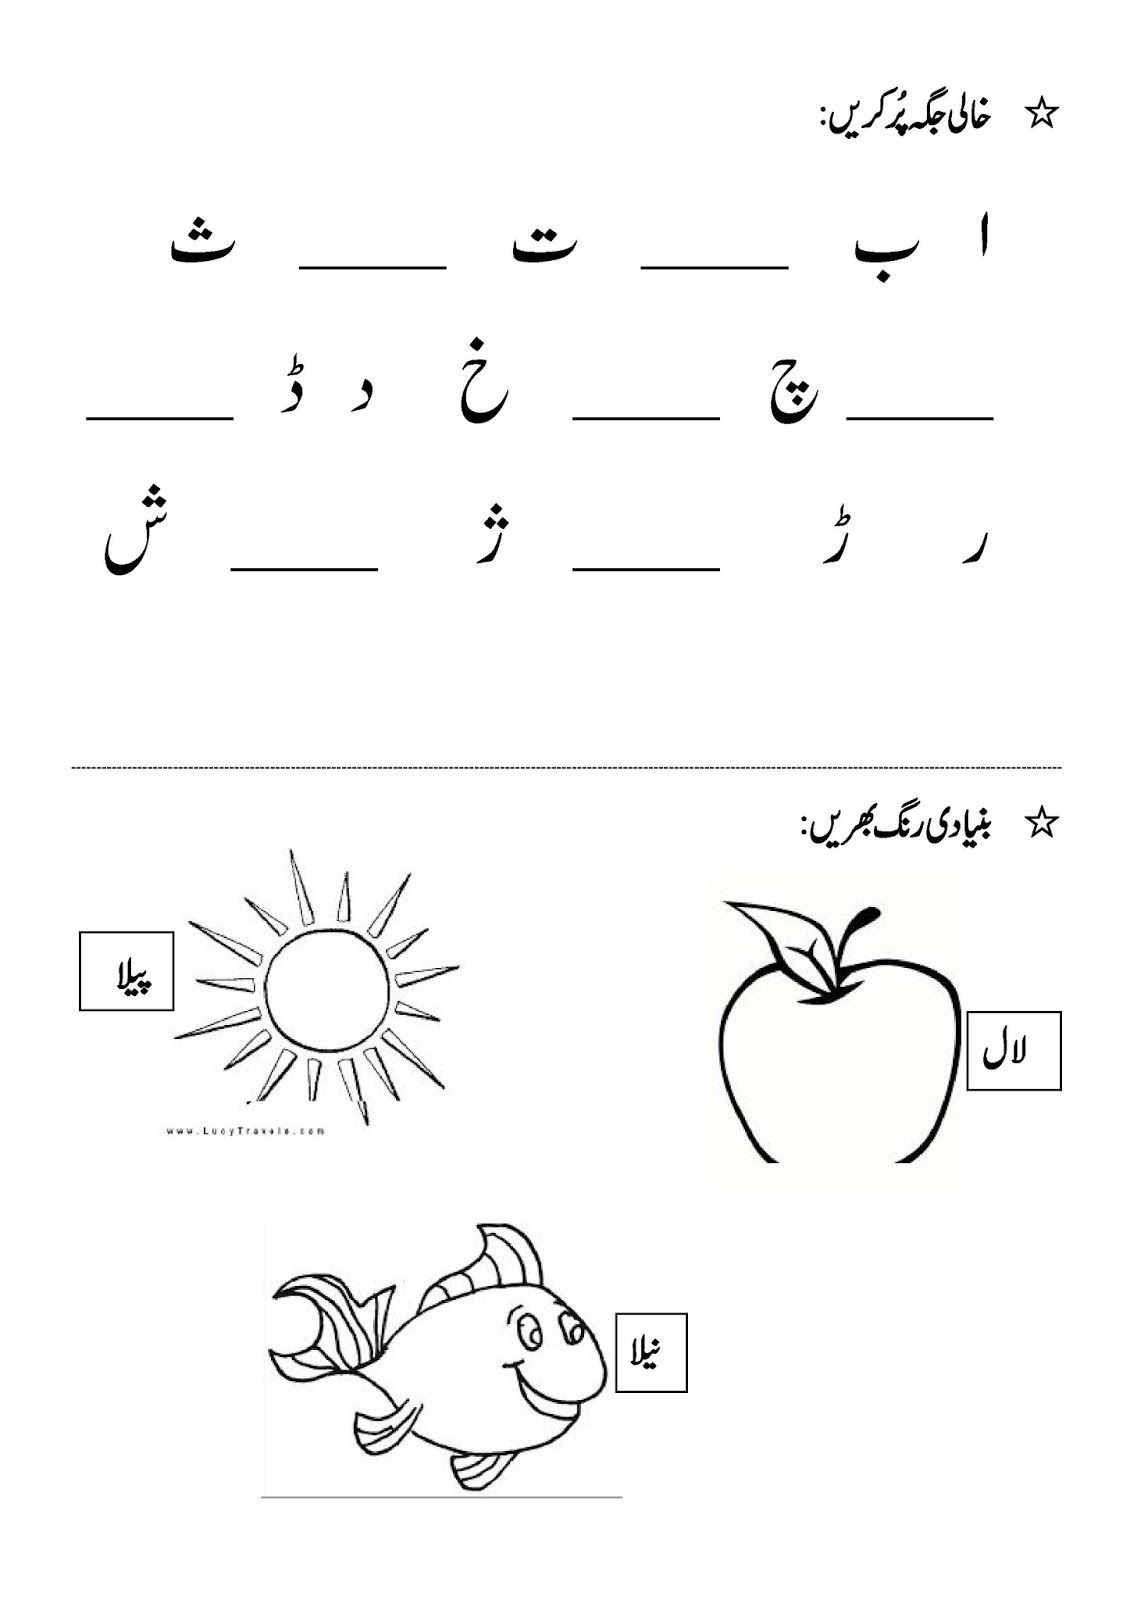 Ou Ow Worksheets 3rd Grade Urdu Alif Worksheet Printable Worksheets and Activities for